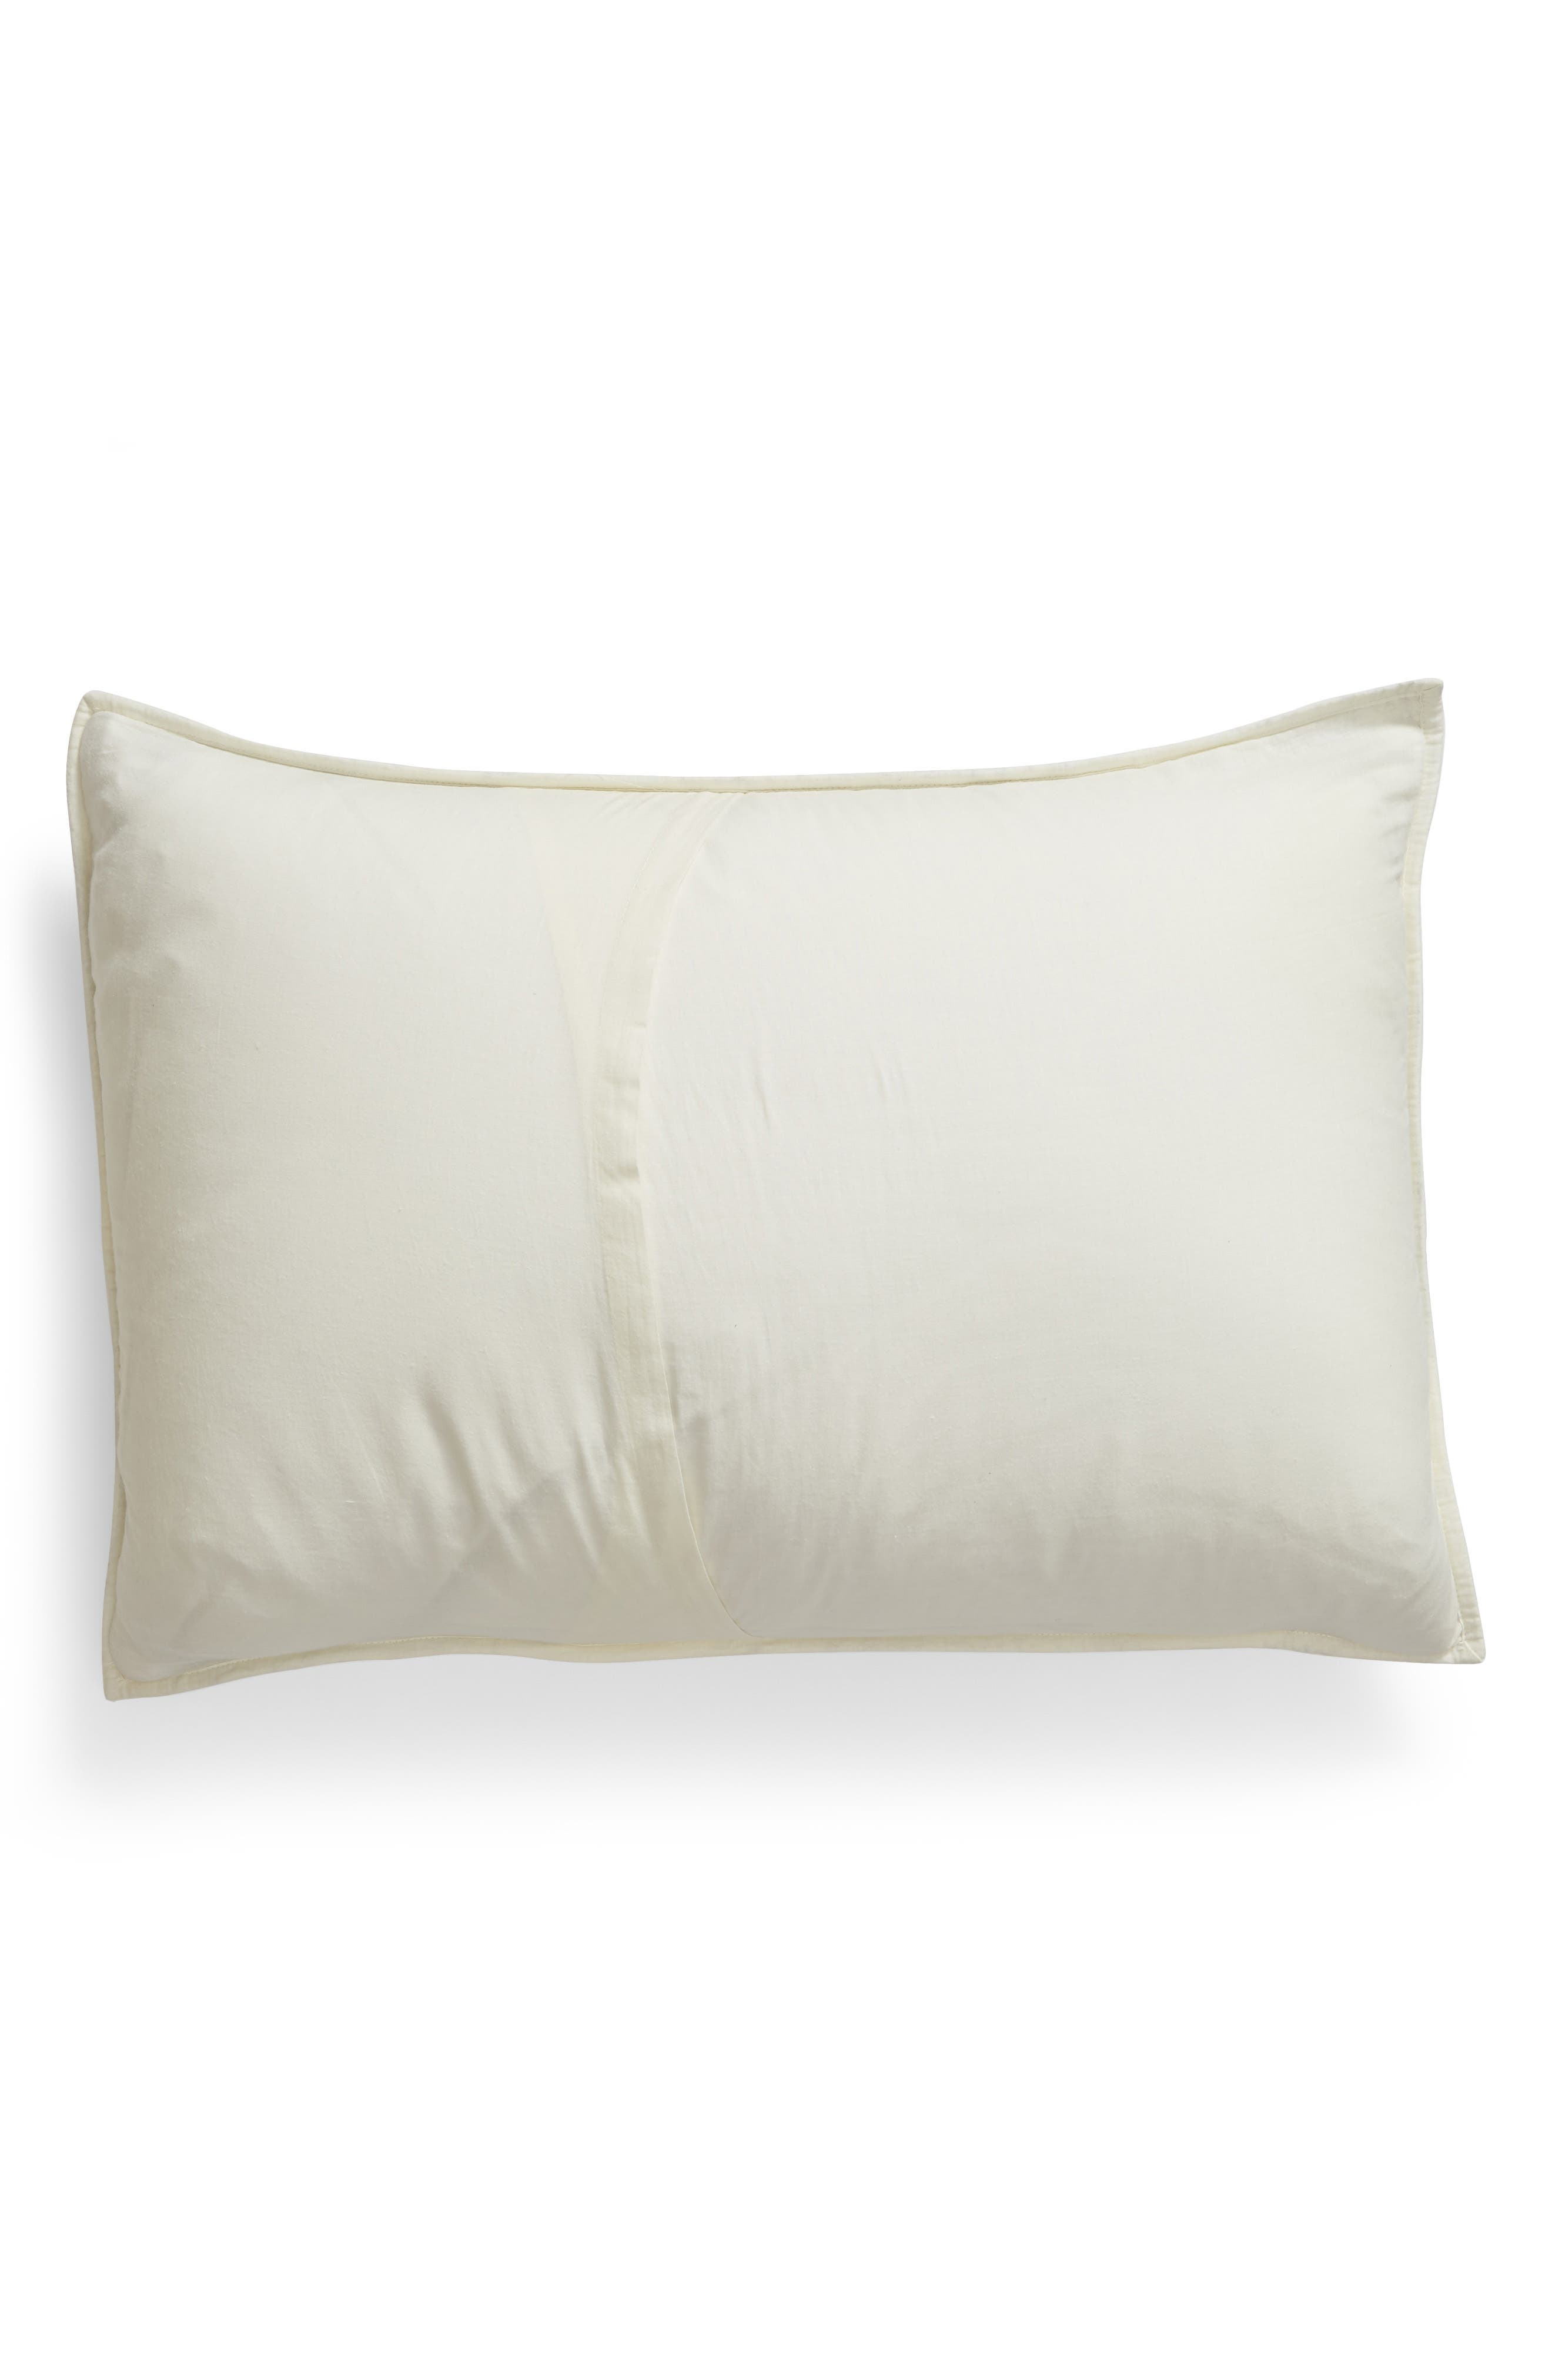 Ria Embroidered Sham,                             Alternate thumbnail 2, color,                             IVORY